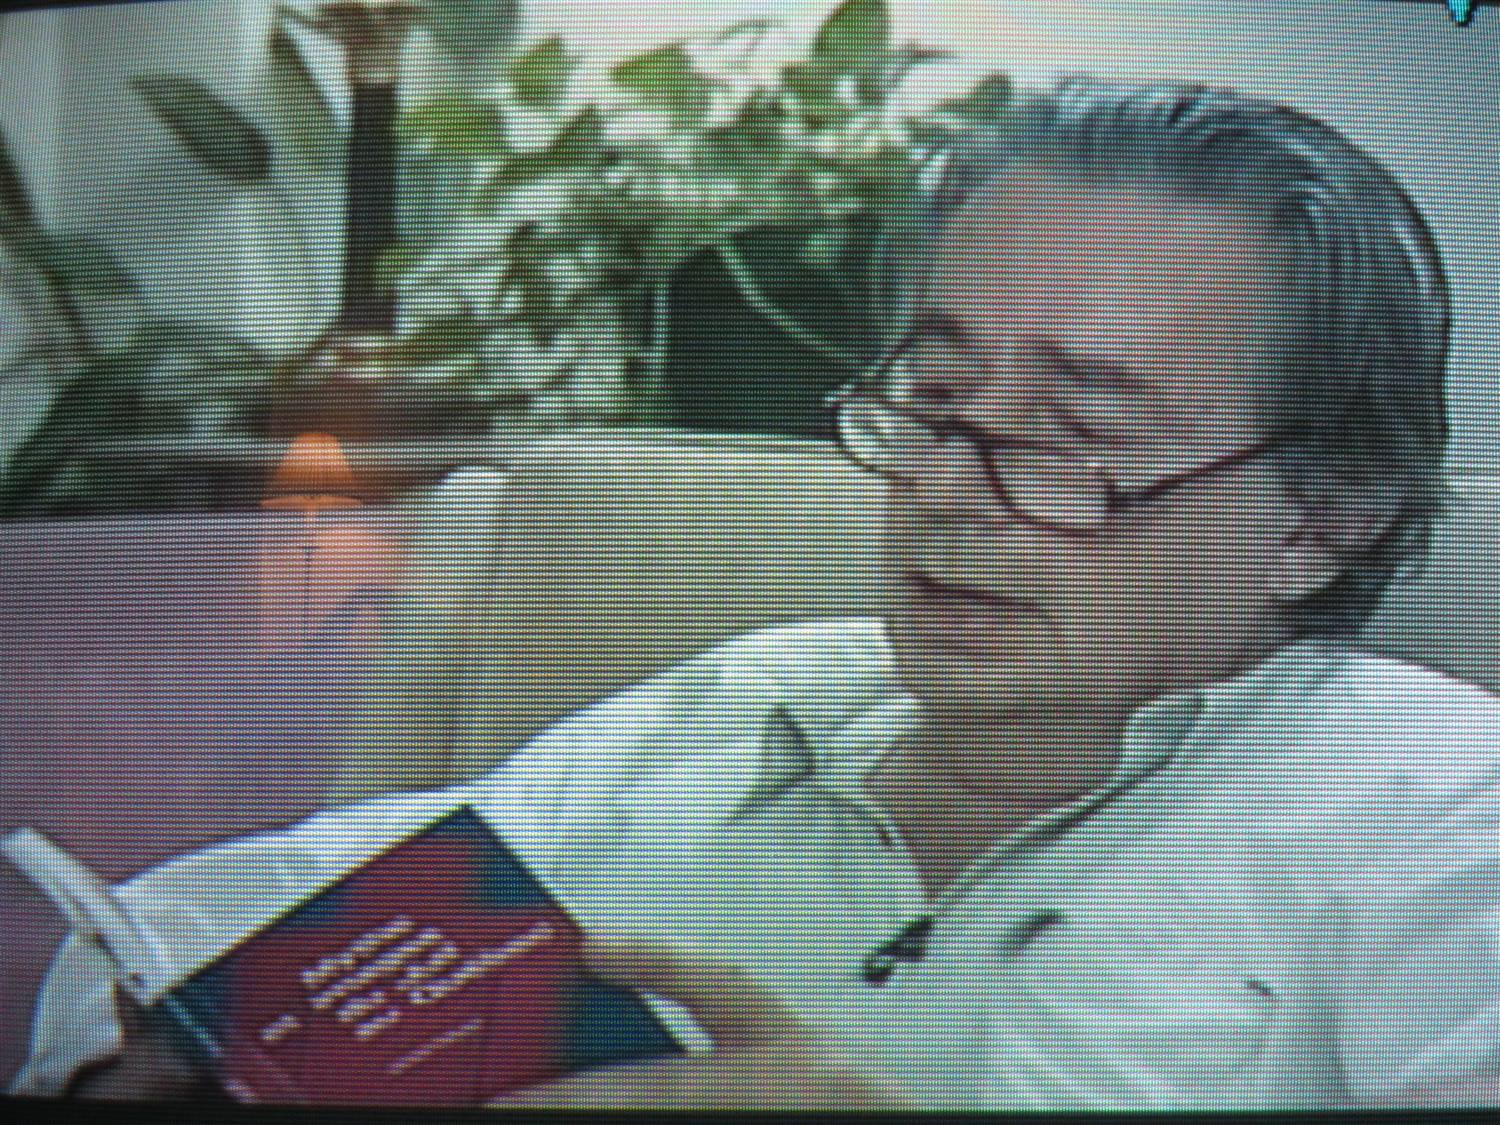 benny by mordecai richler essay My time at a hasidic boys' camp  in an essay, bilingualism and  barney's version by mordecai richler blindness by josé saramango.